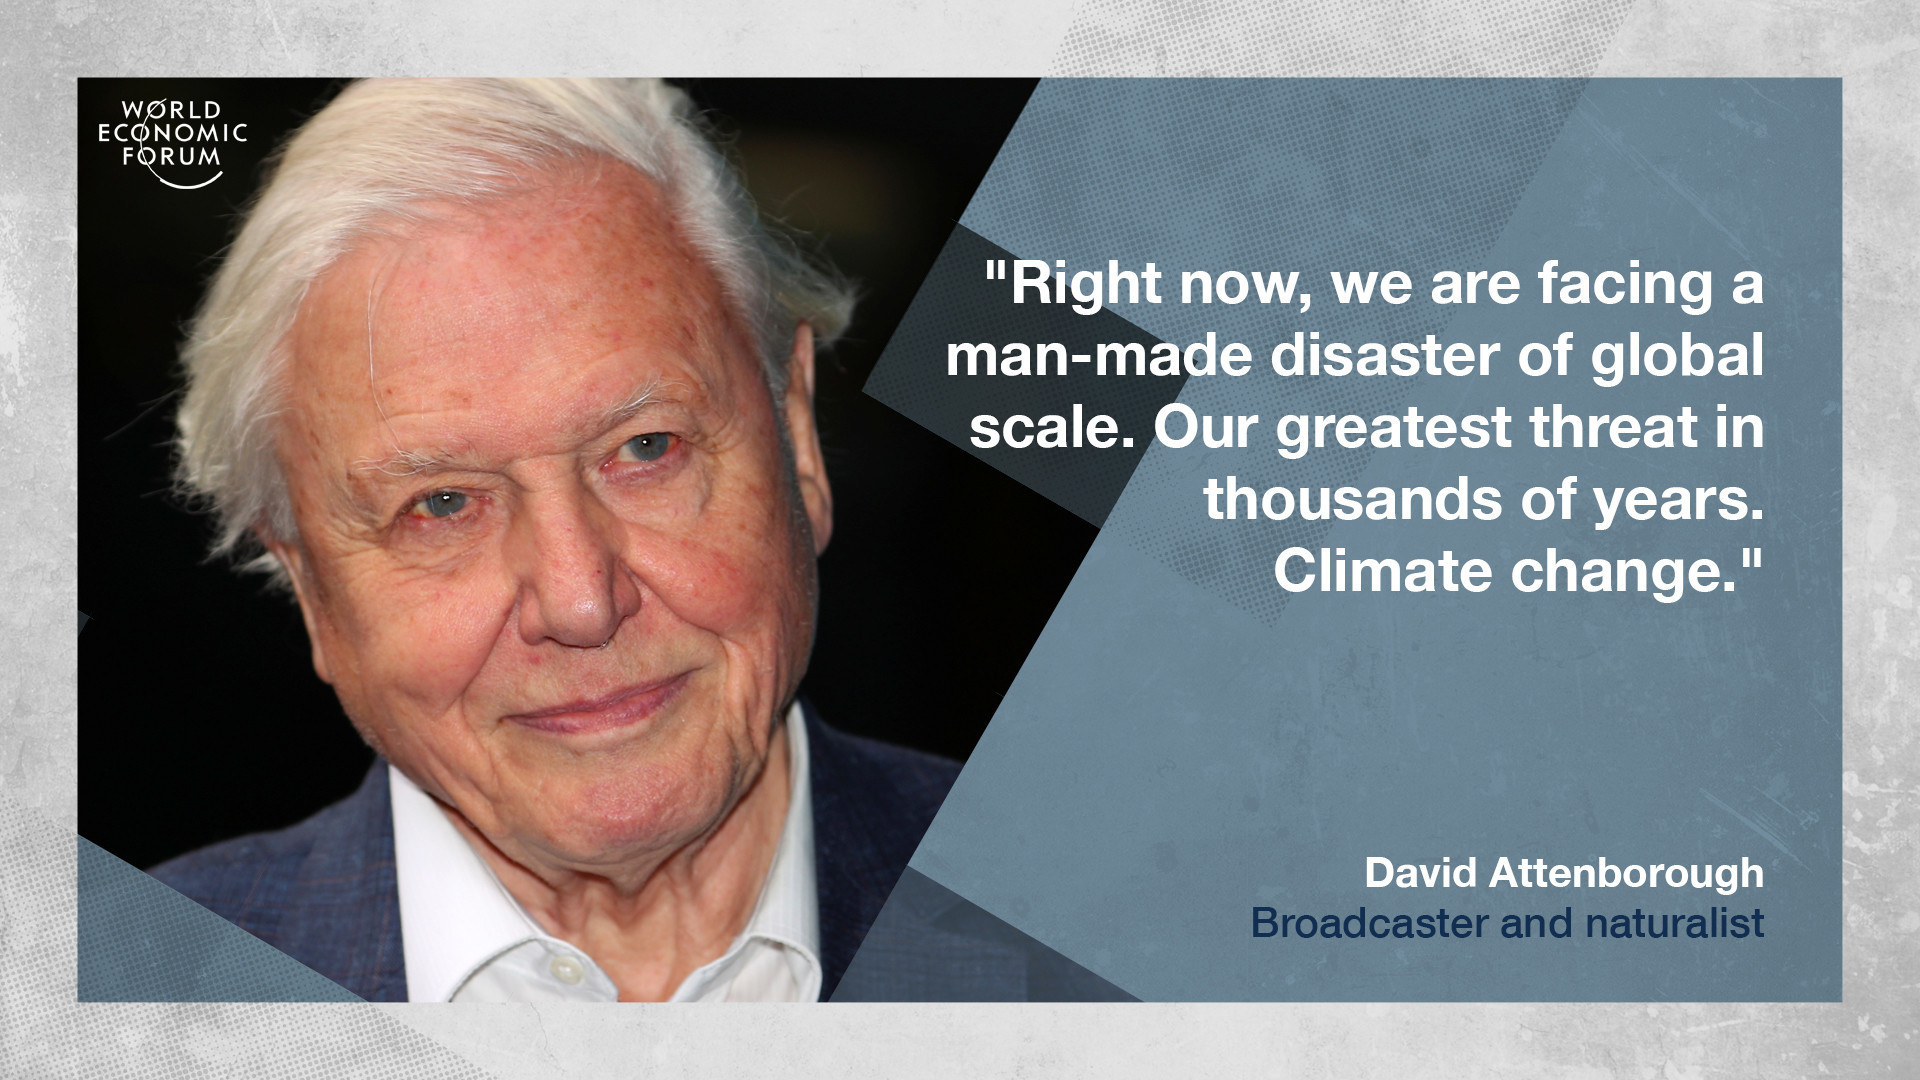 Legendary broadcaster and naturalist david attenborough will receive the forums crystal award on monday evening as an exceptional cultural leader who has